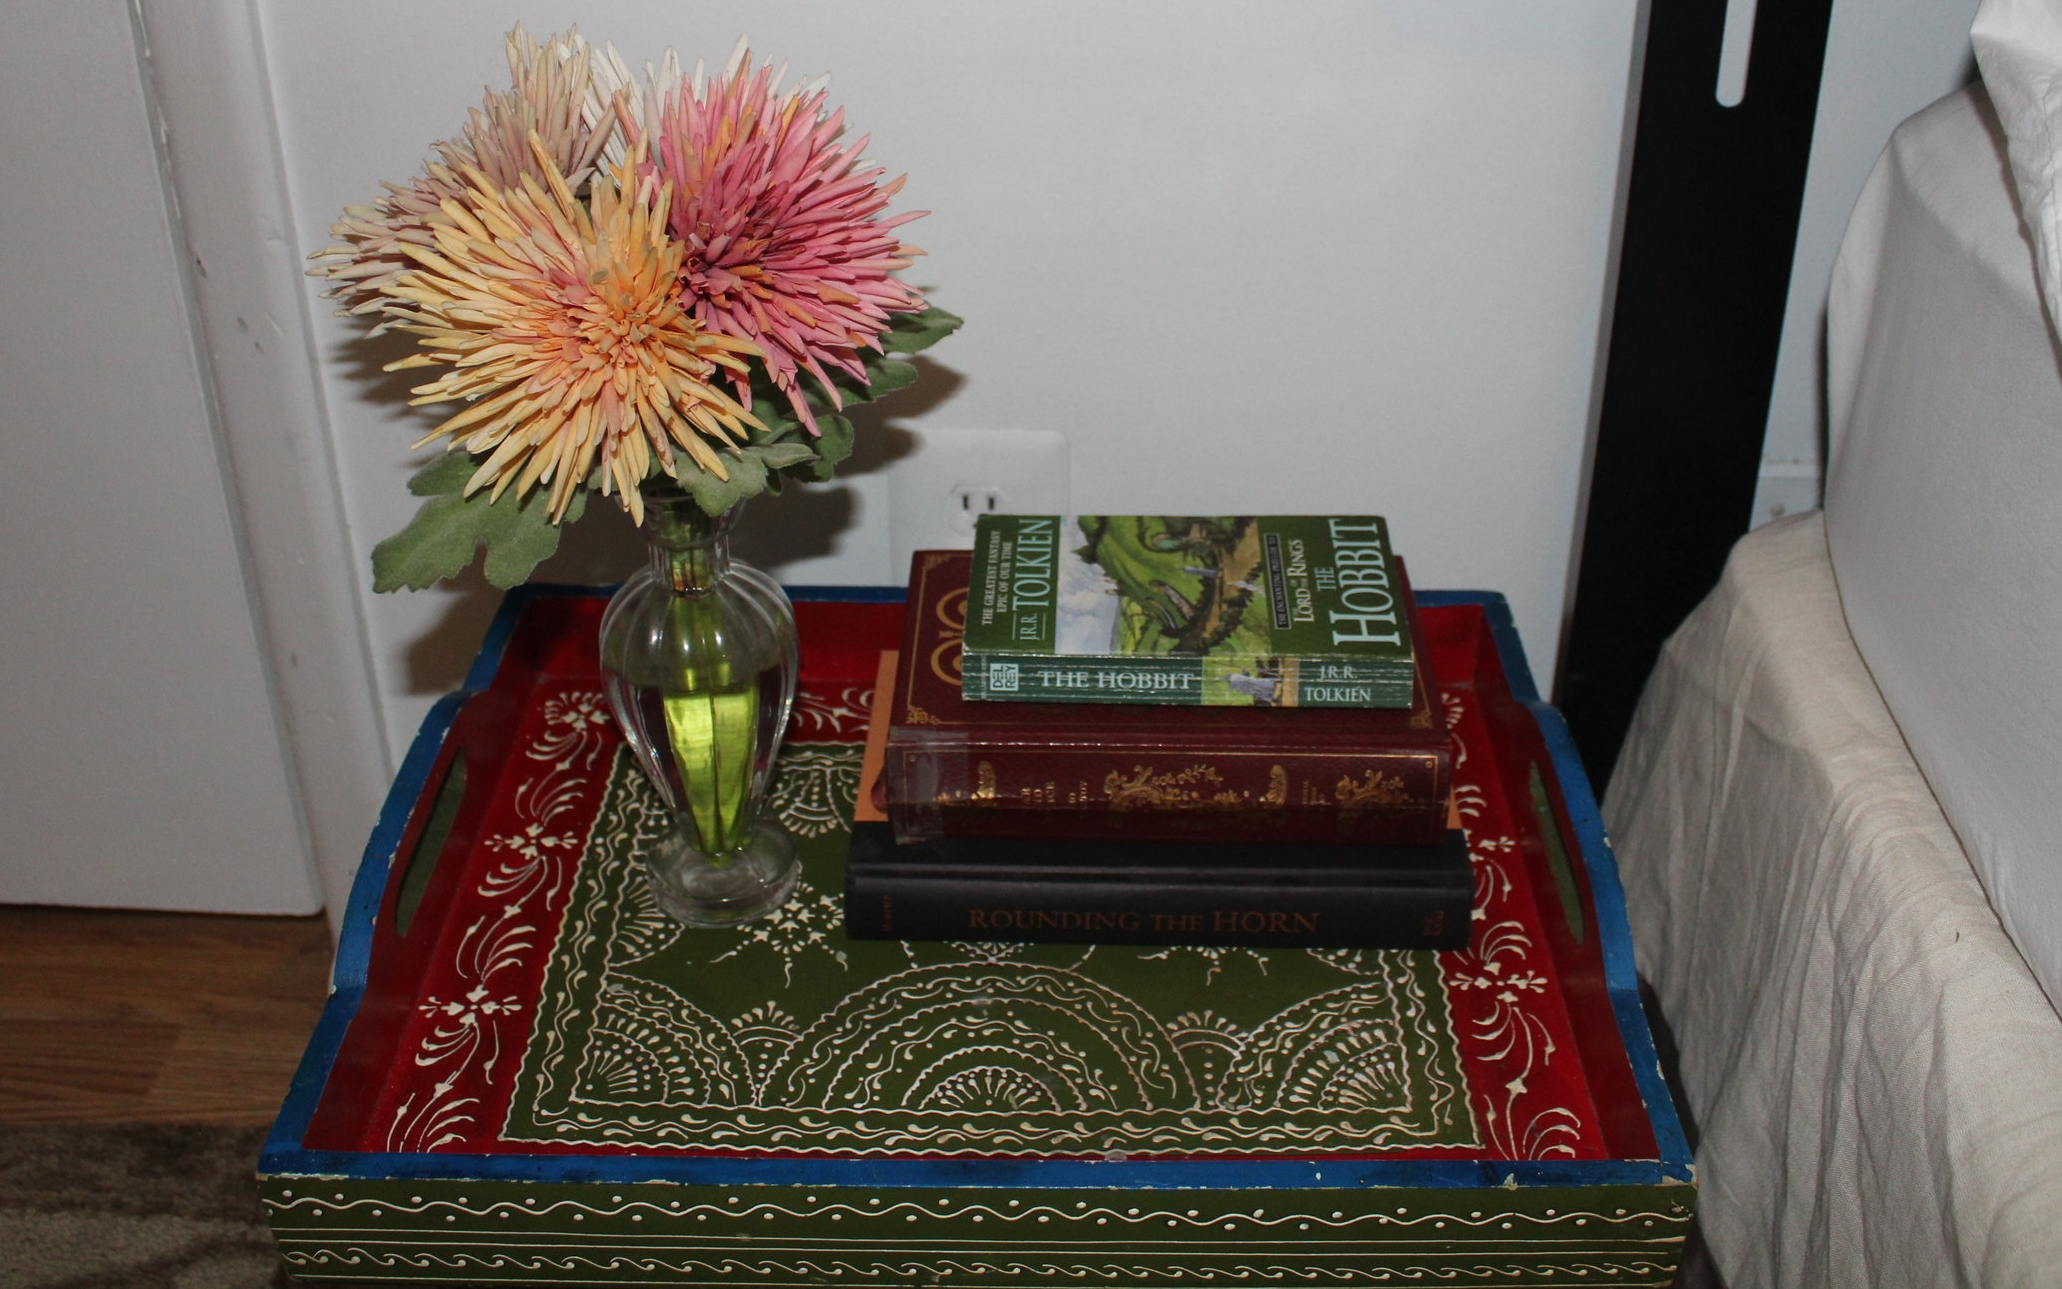 SPRING - Add some bright colored flowers in a pretty vase to your bedside table.